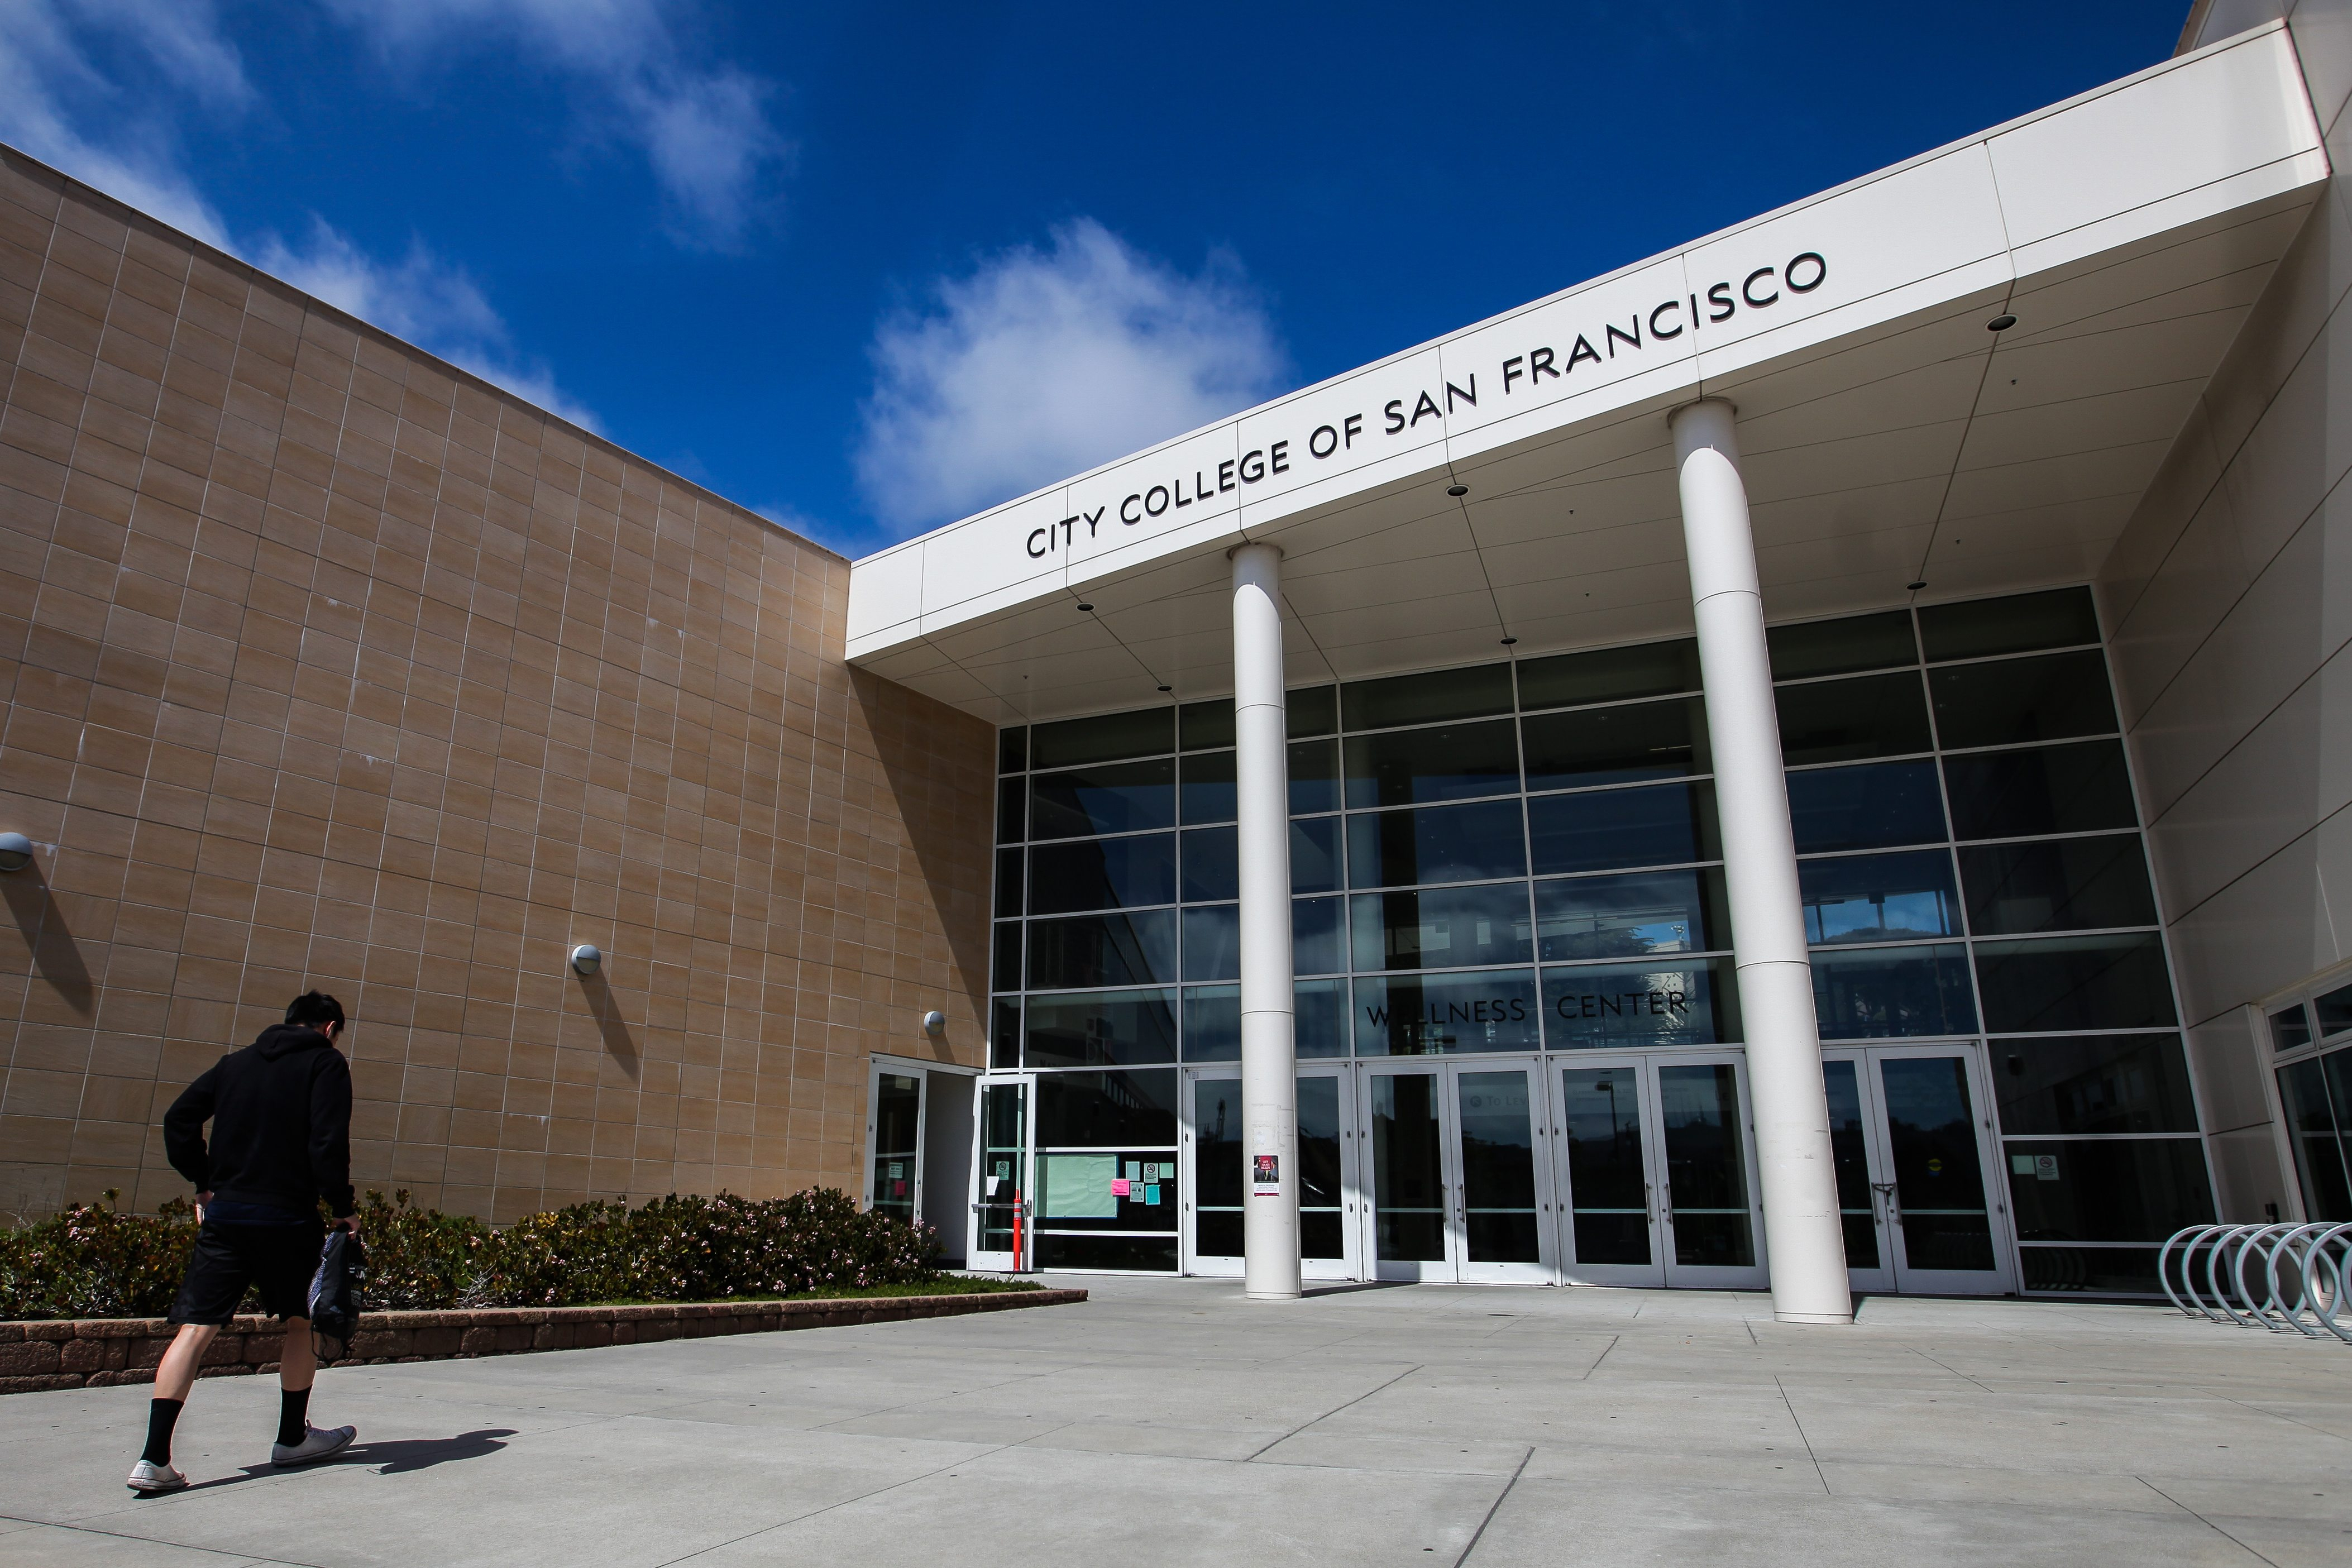 Городской Колледж Сан Франциско | International Connection Pertaining To What Dates Is The Fall Semester Start And End At City College Of San Francisco